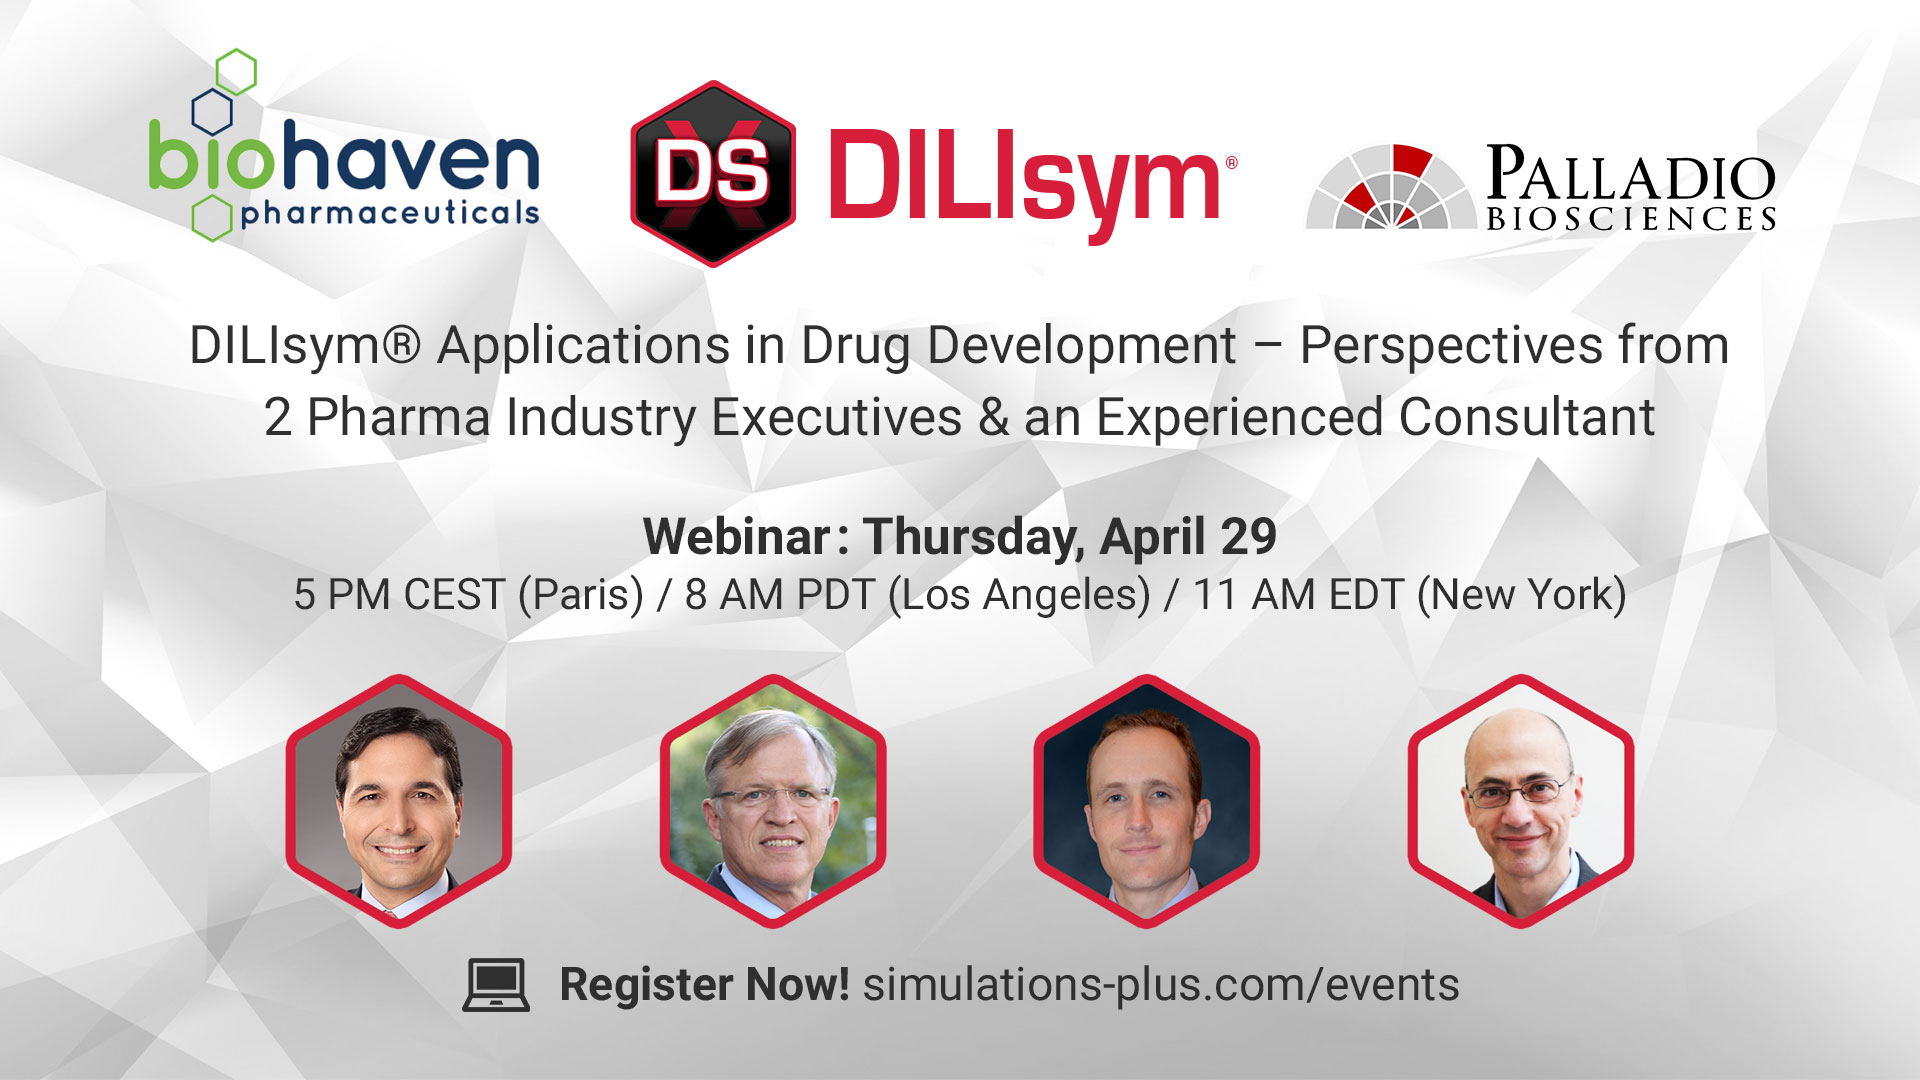 DILIsym palladio biosciences biohaven pharmaceuticals DILIsym in Drug Development - perspectives from 2 pharma industry executives and an experienced consultant